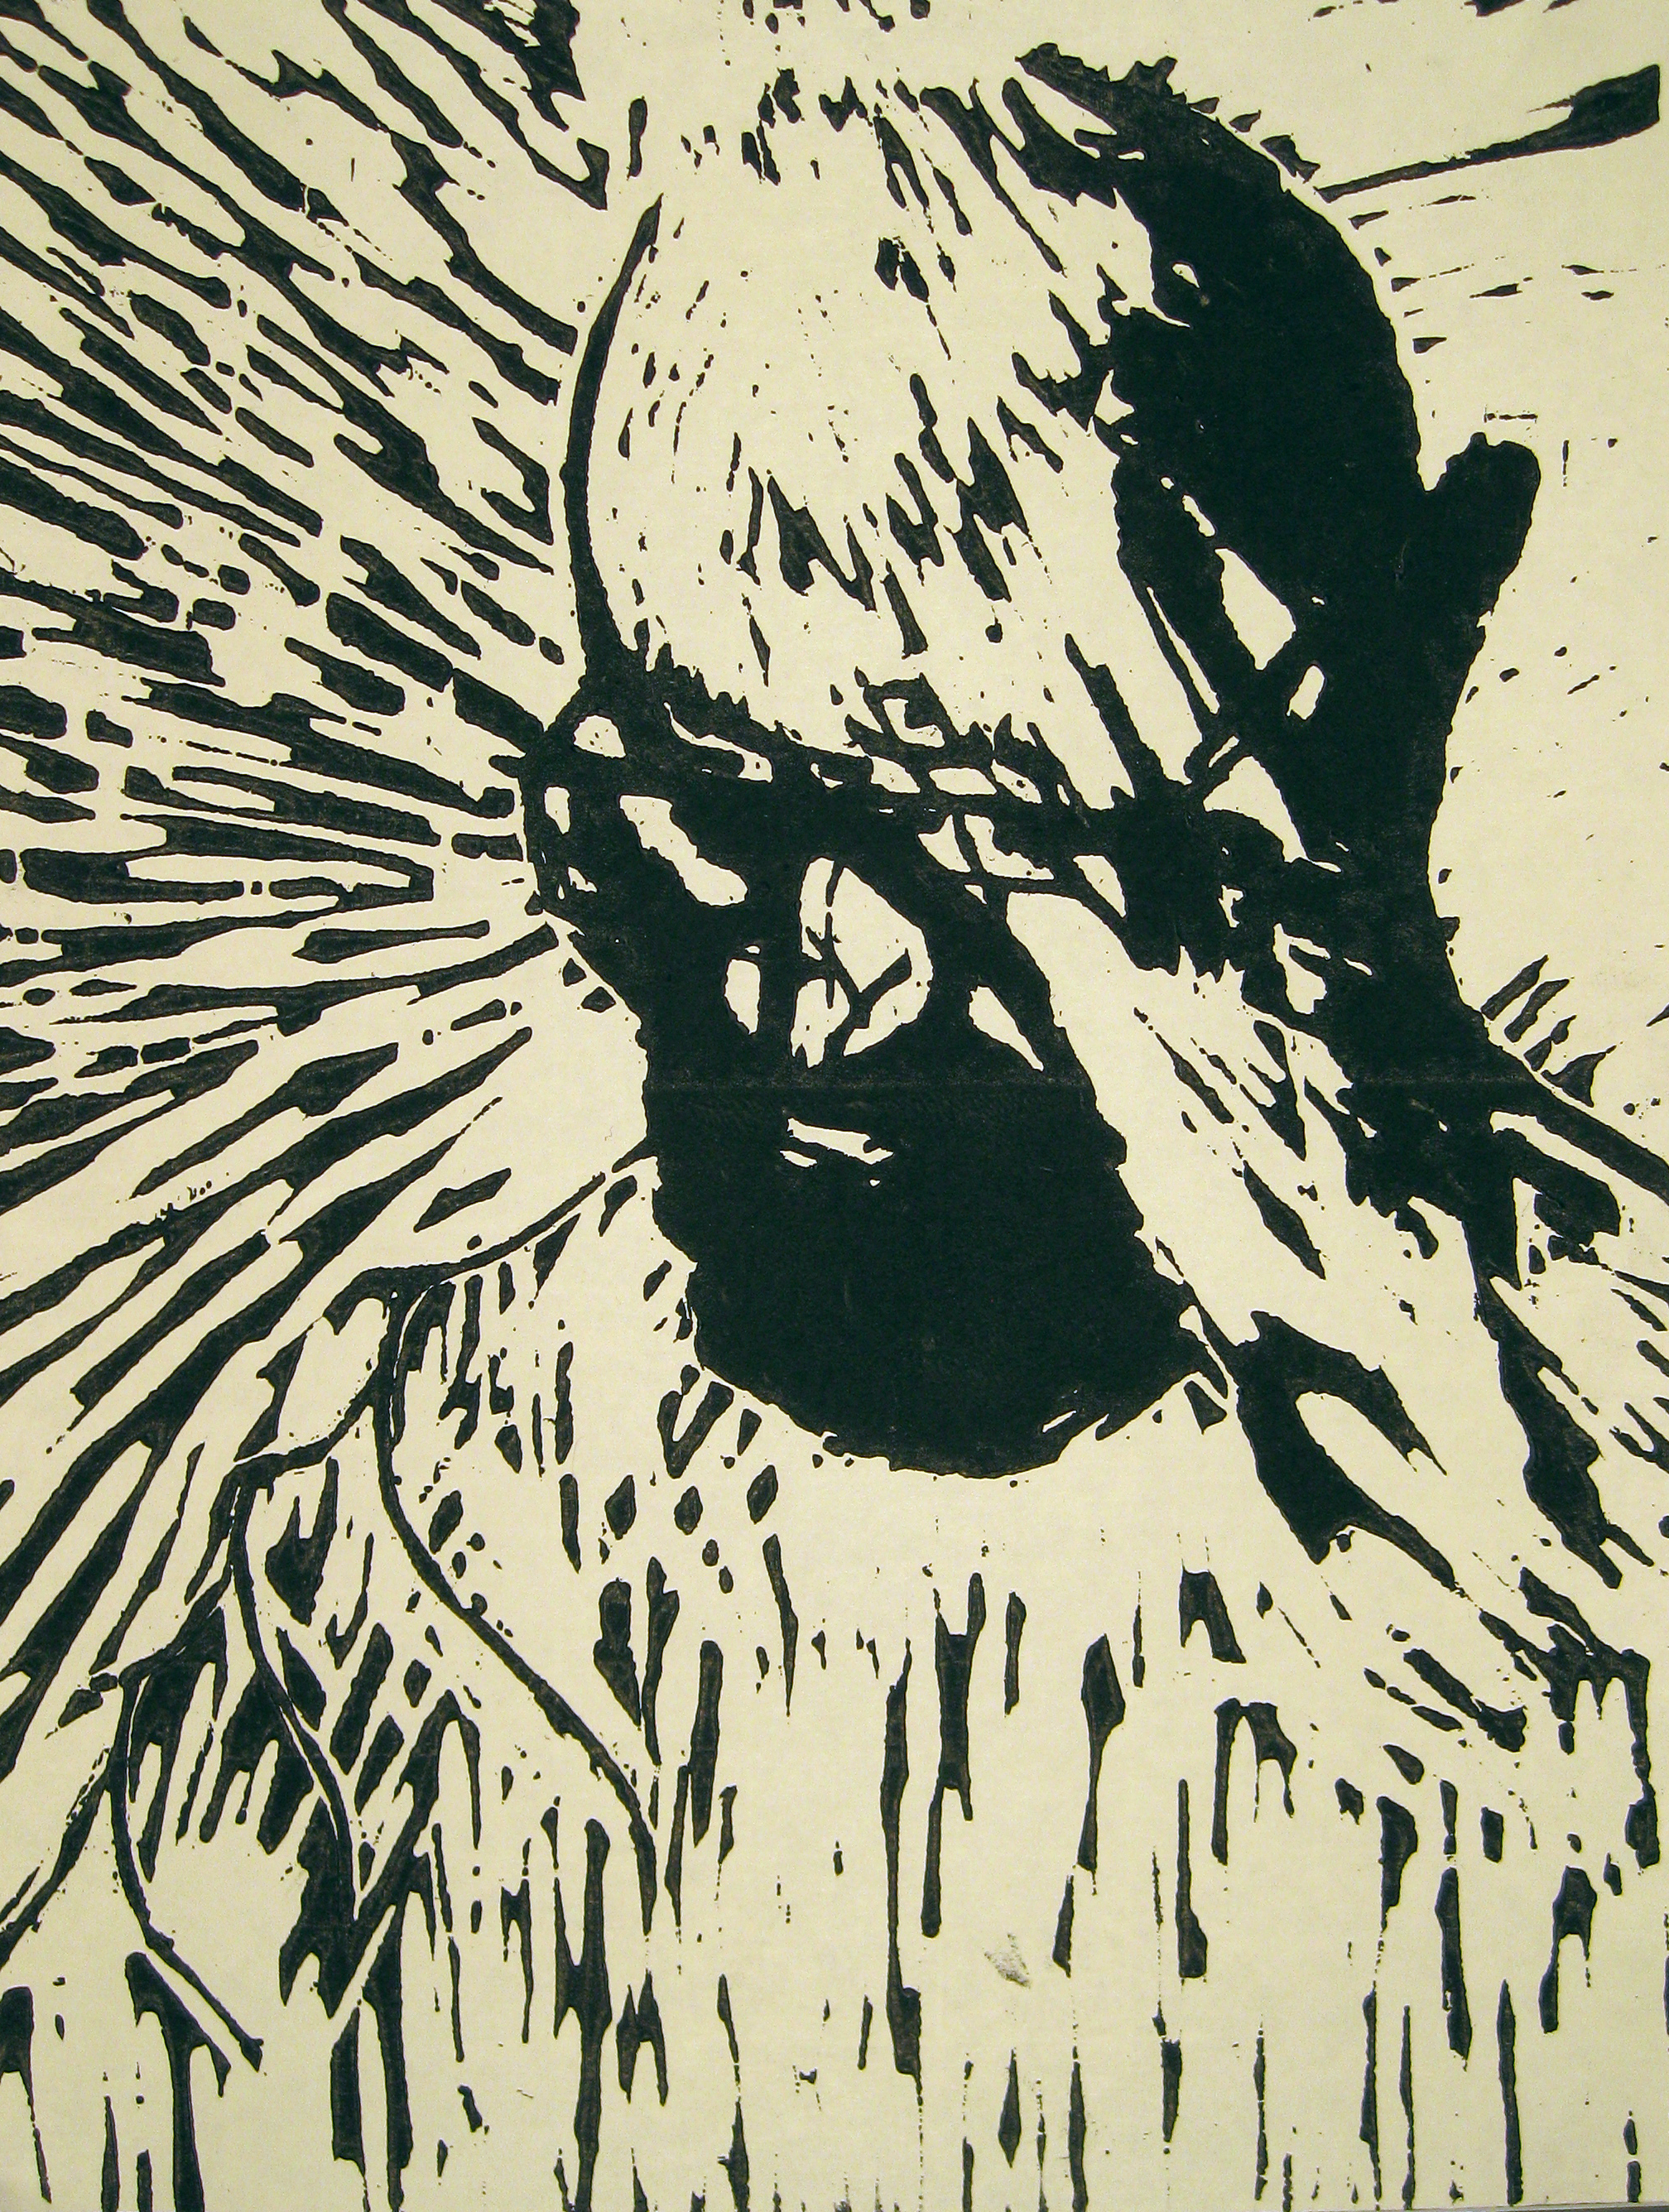 Relief Print, BHS